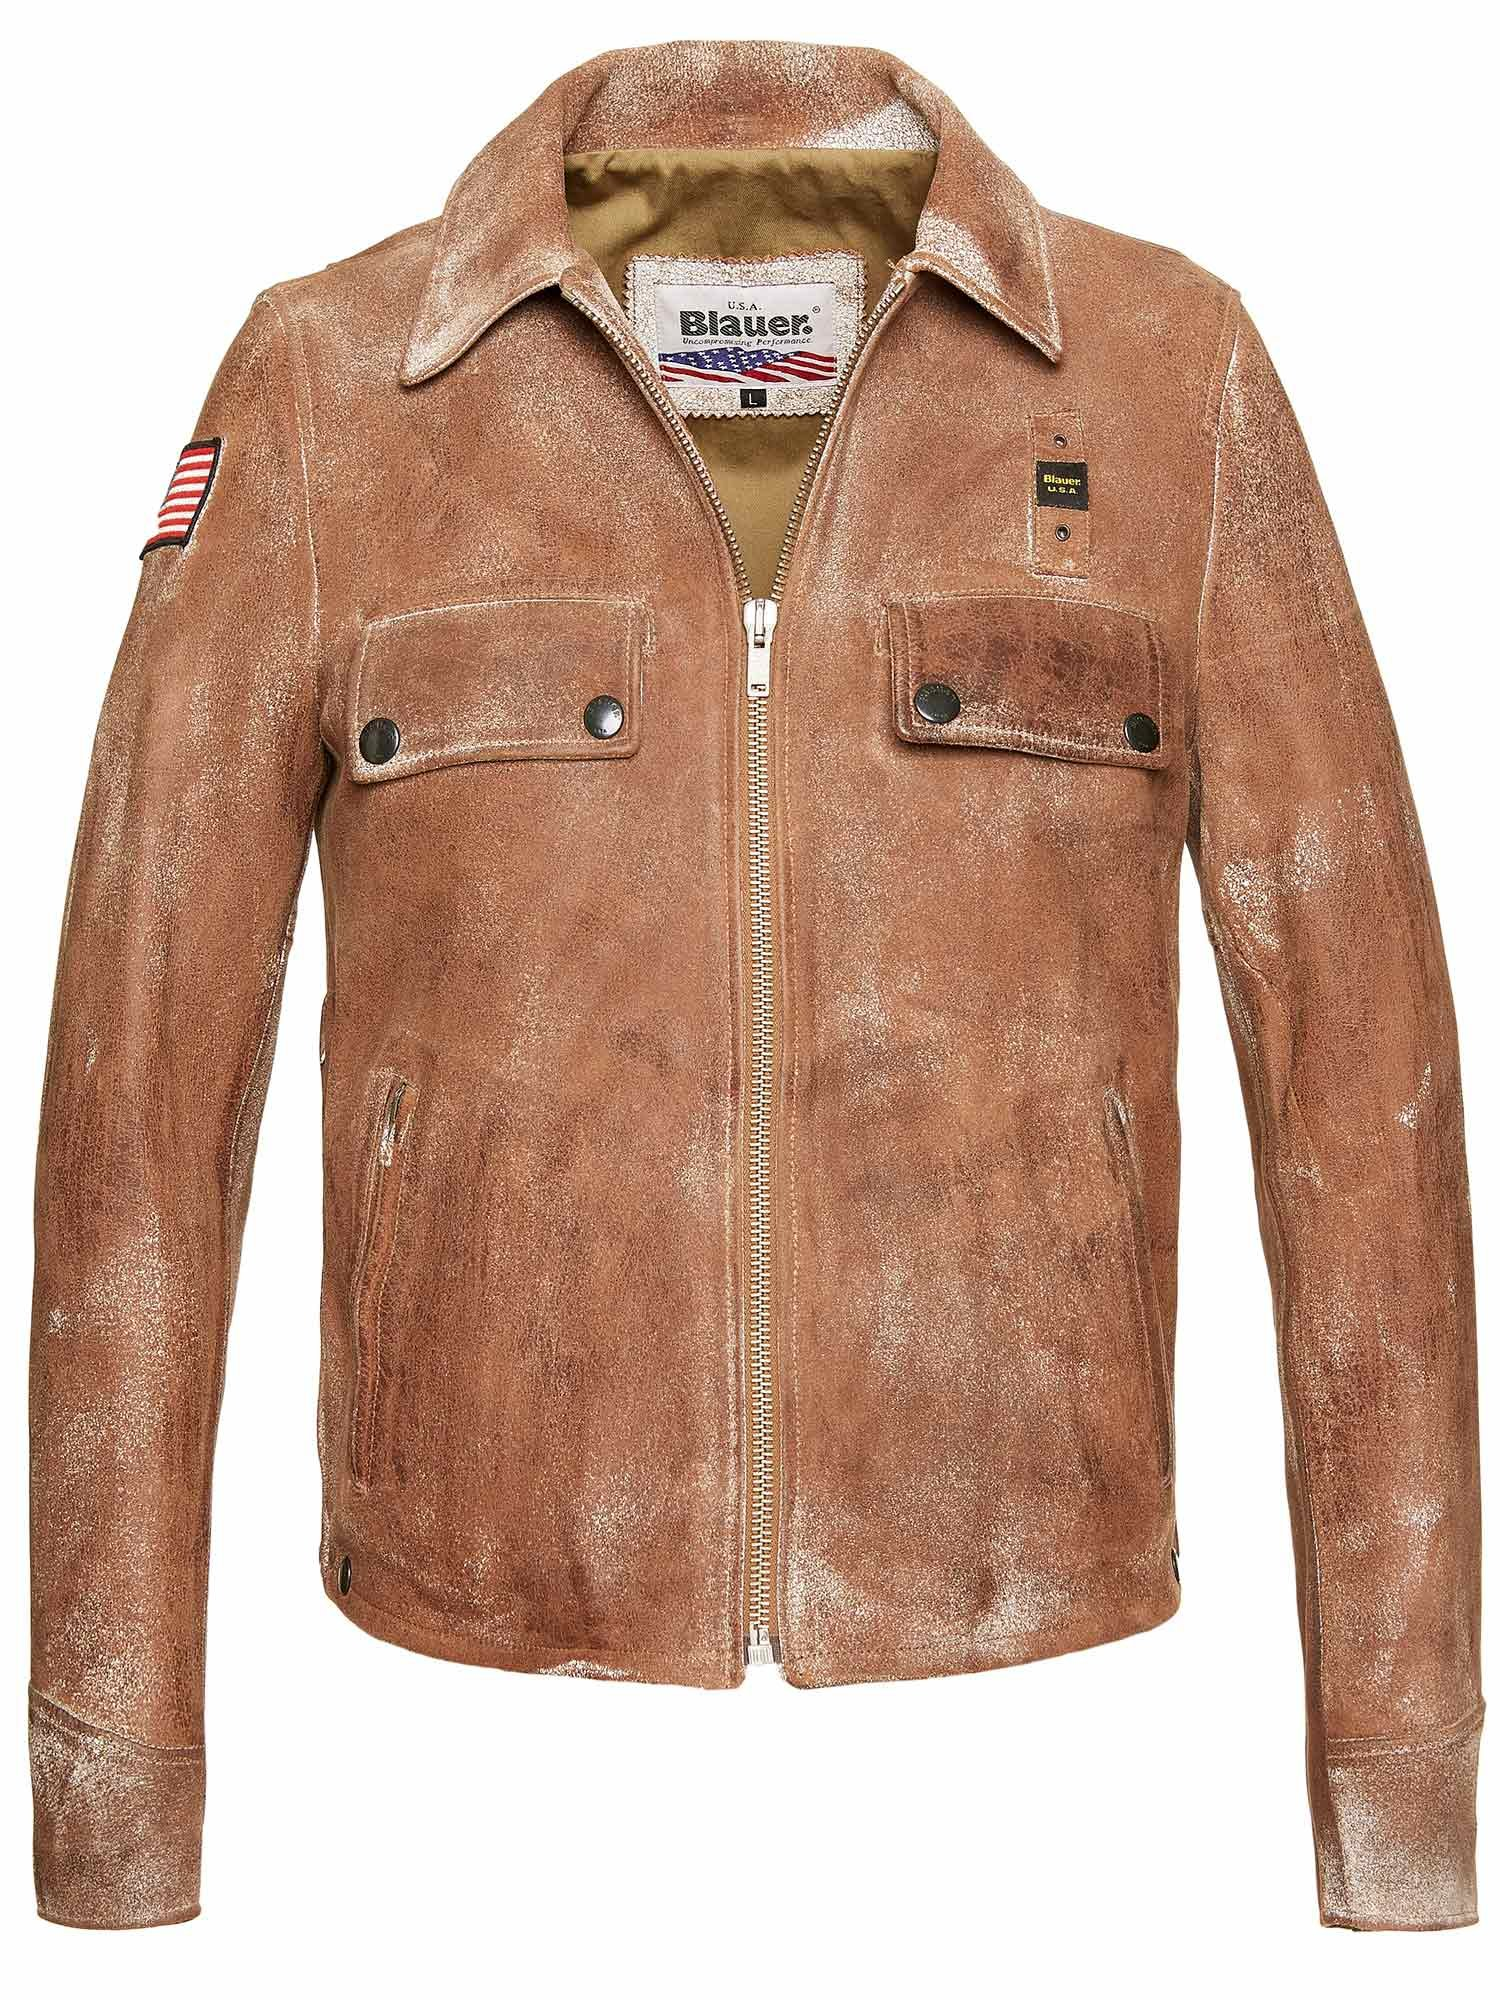 Blauer - TYLER VINTAGE LEATHER JACKET - Gardenia - Blauer